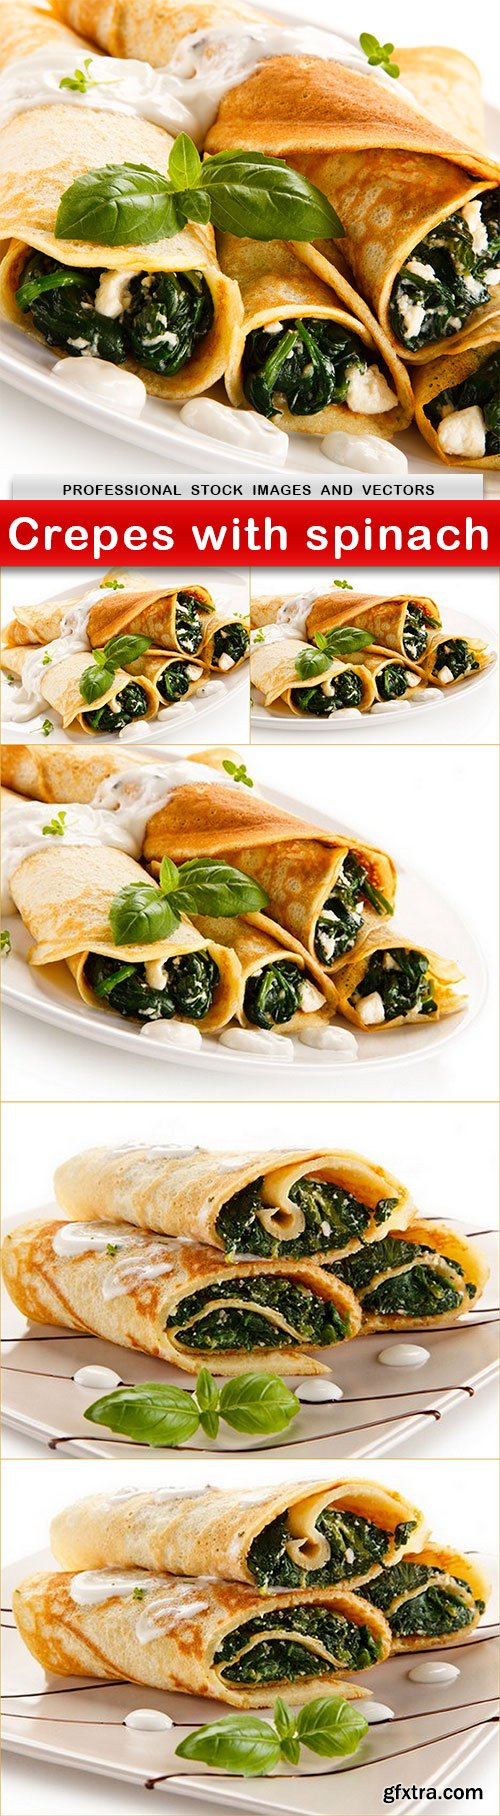 Crepes with spinach - 6 UHQ JPEG